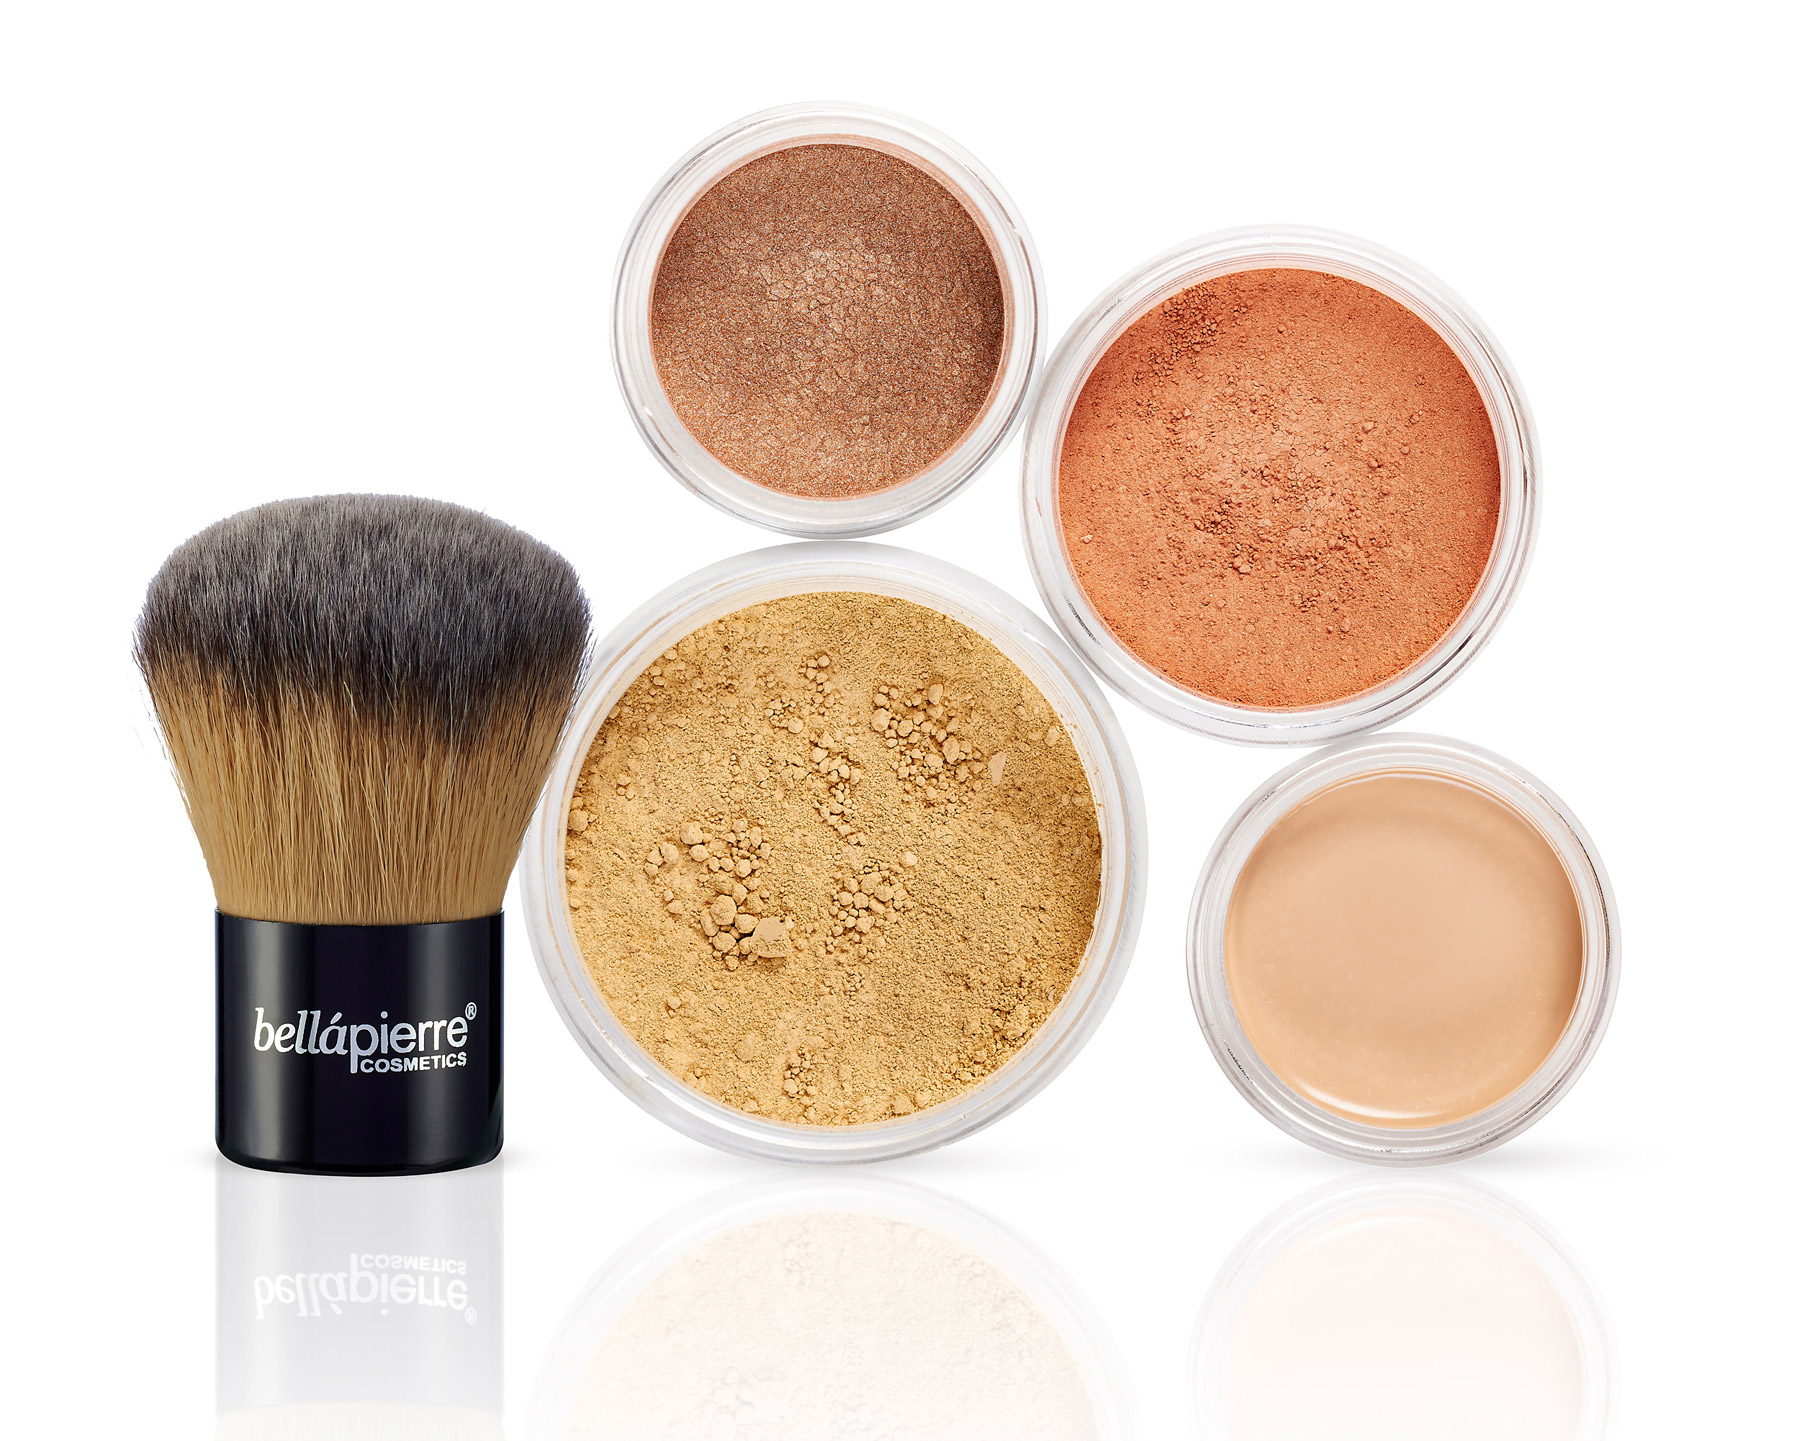 Bellapierre powder product shot on a white background